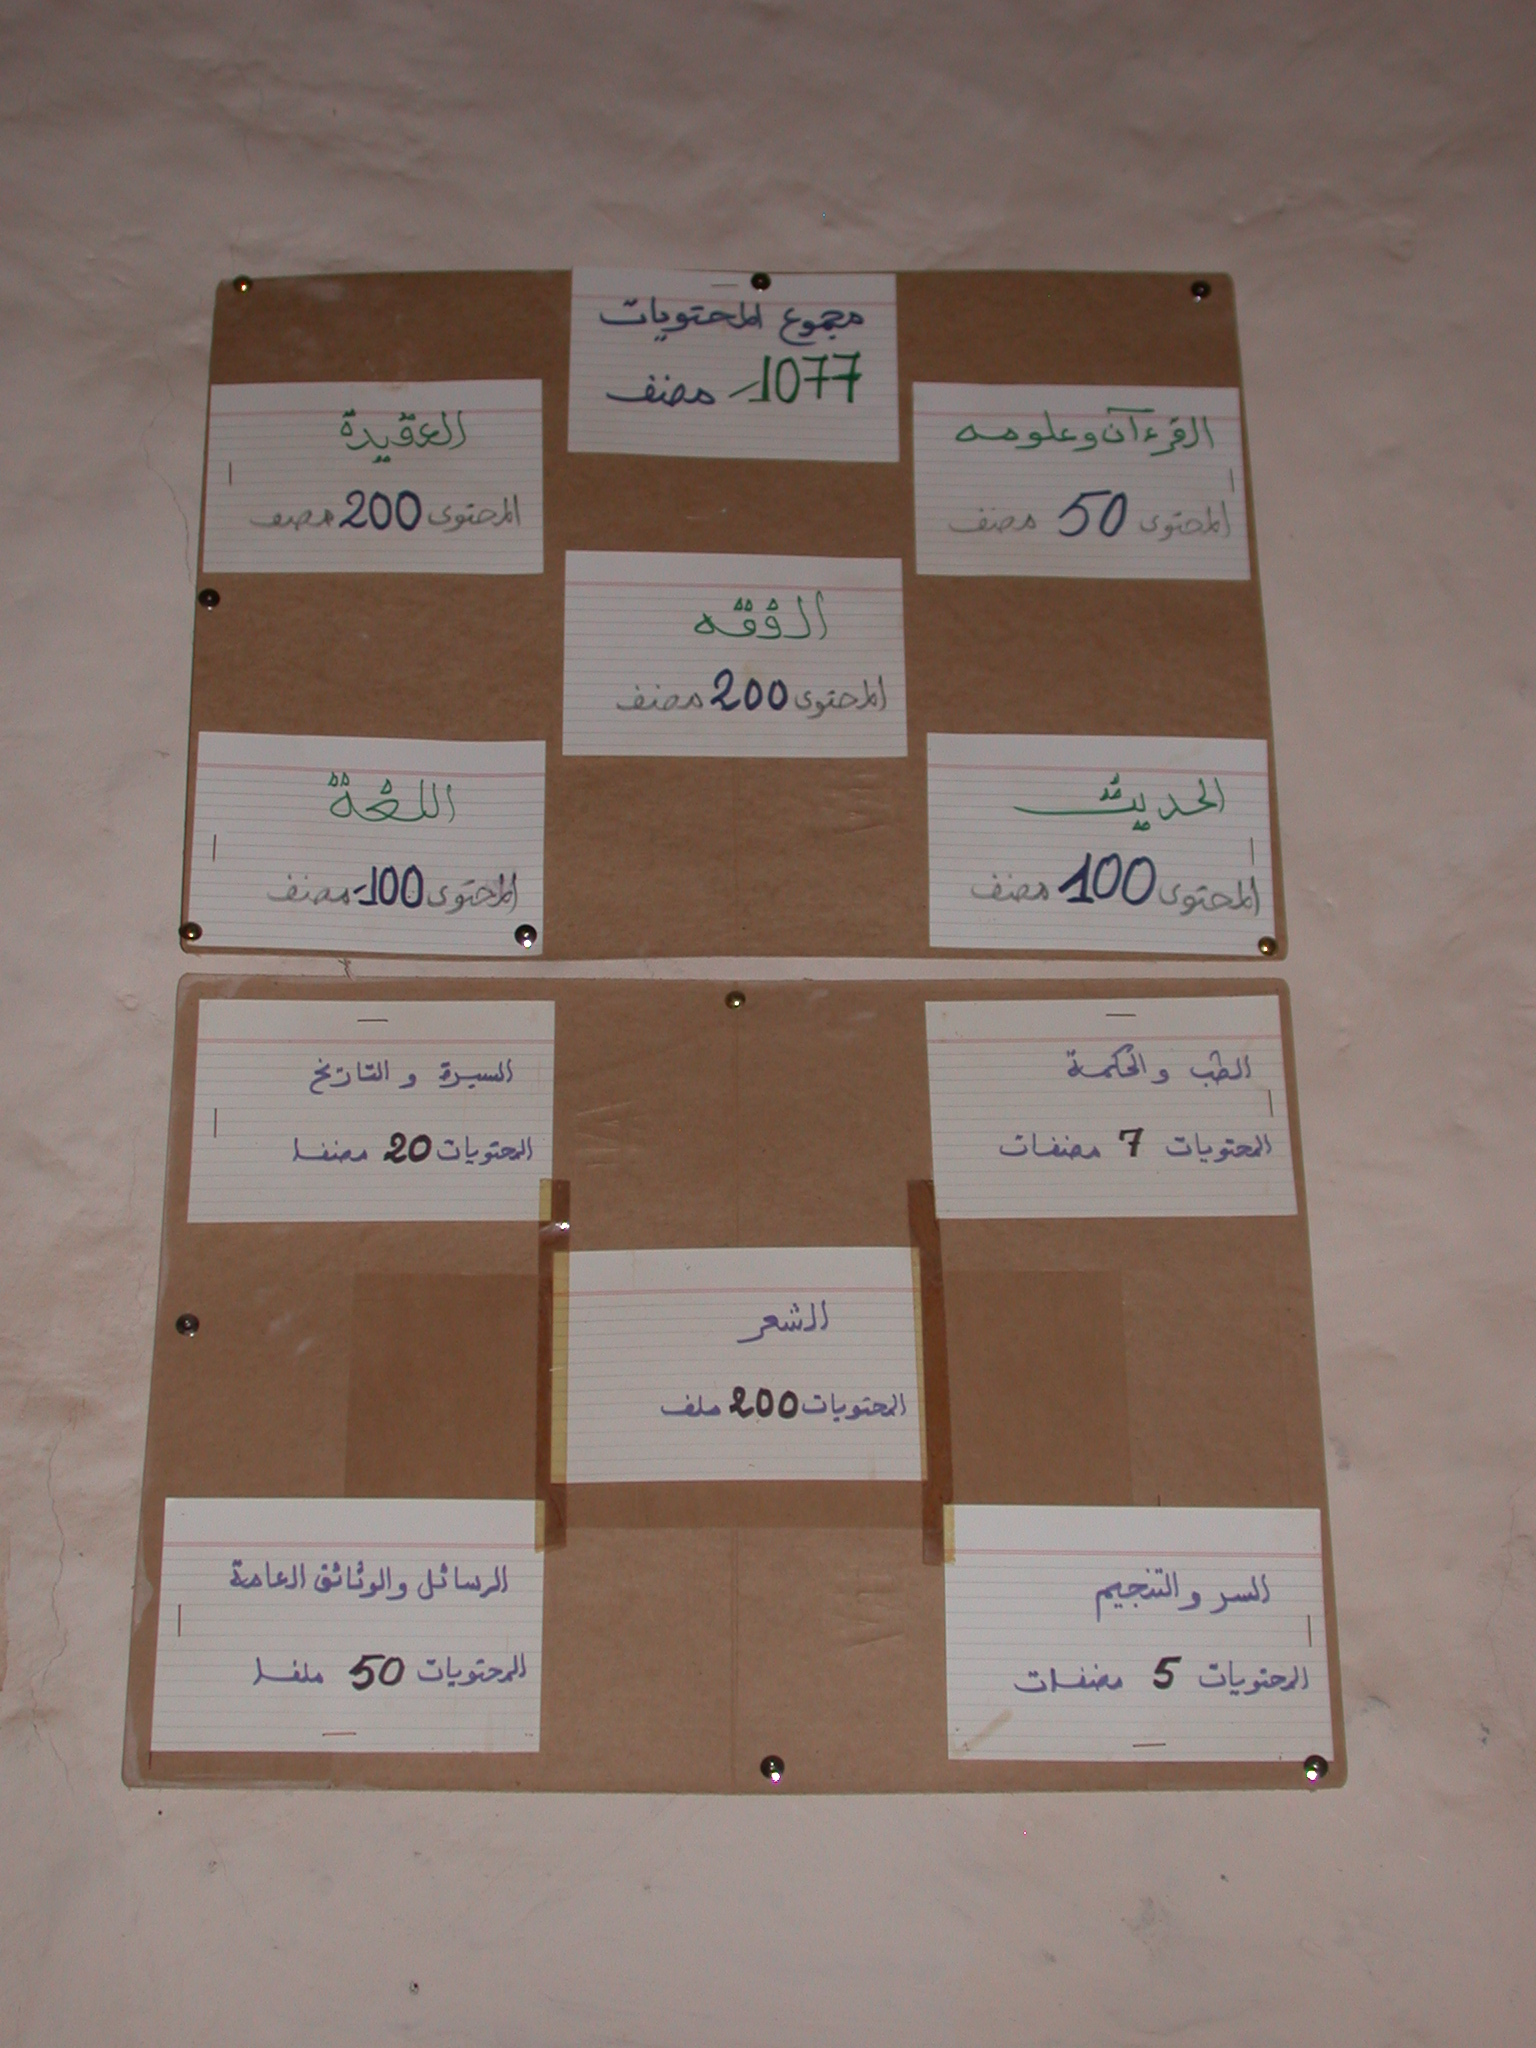 Labels on Book Repository at Library in Ancient City of Oulata, Mauritania